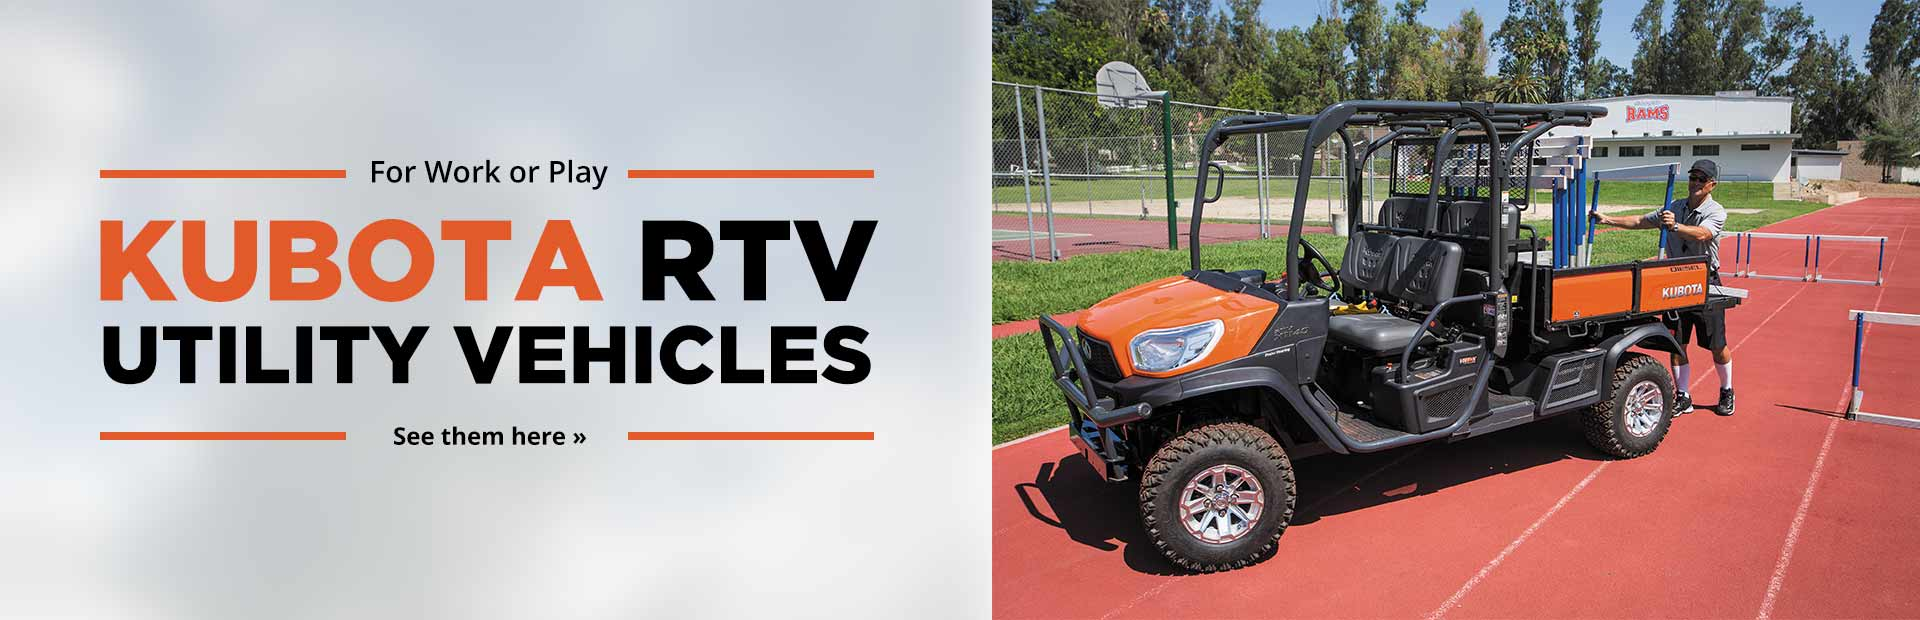 Kubota RTV Utility Vehicles: Click here to view the models.